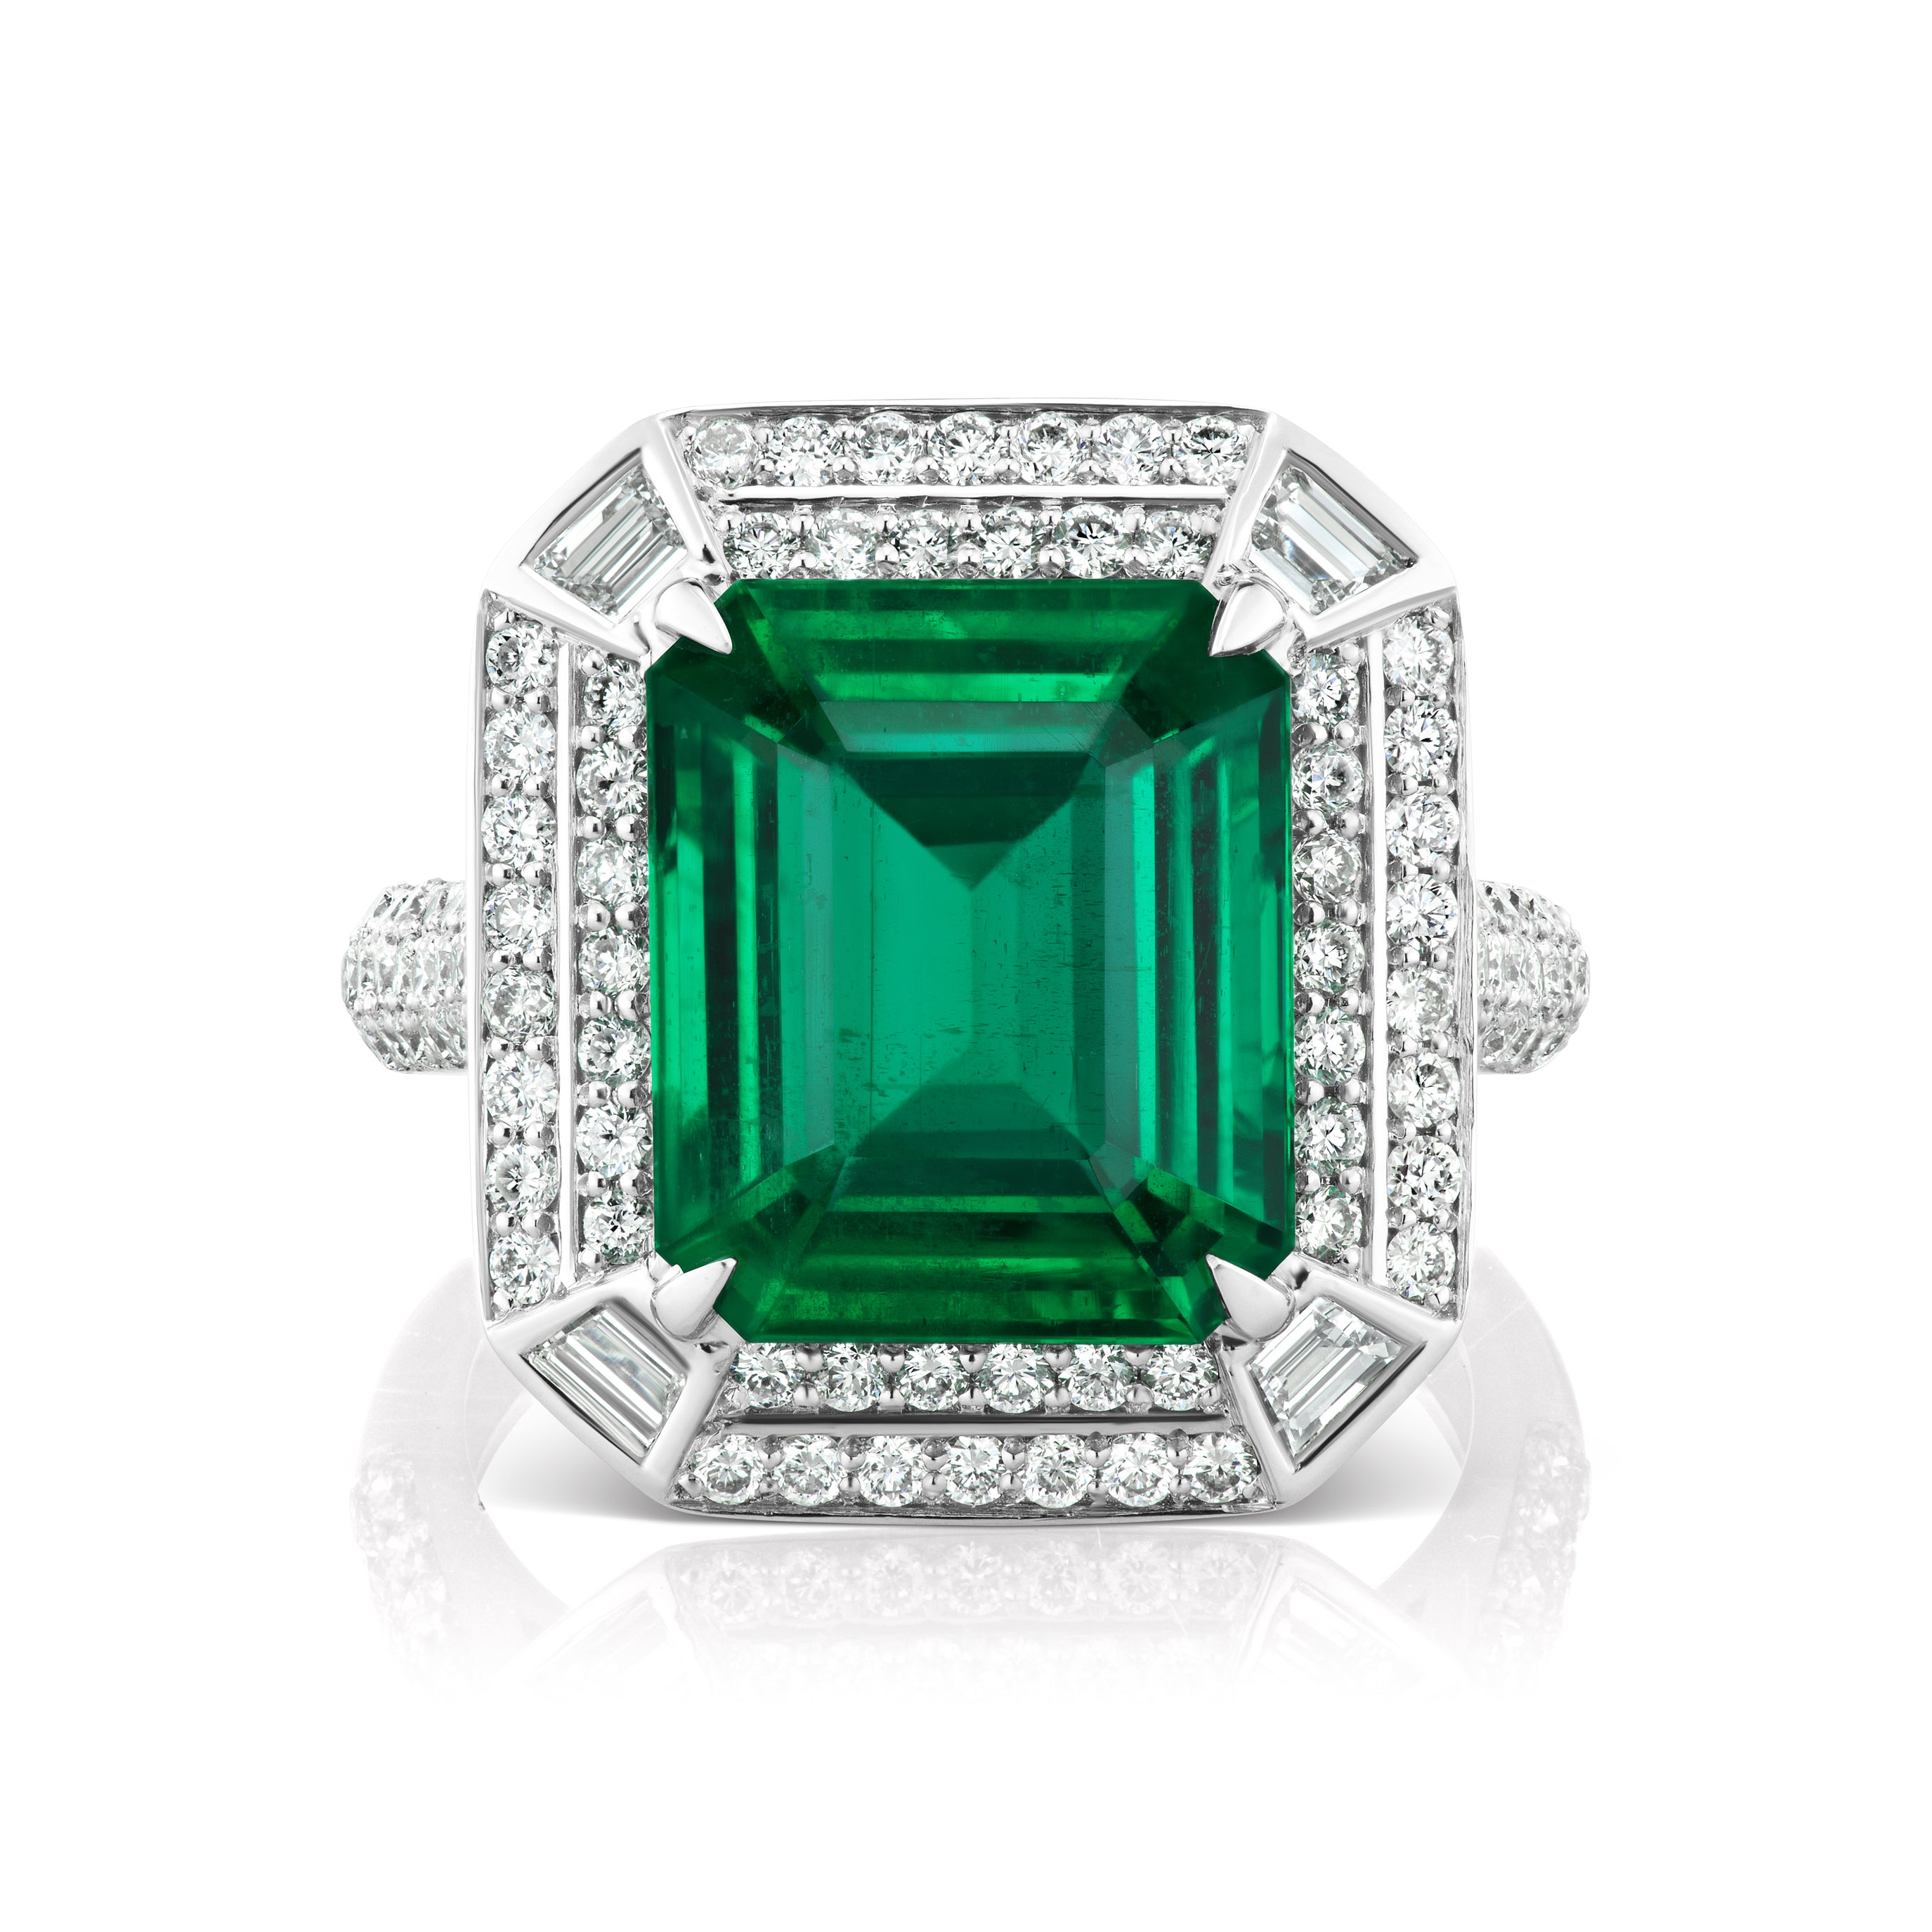 diamond engagement product ring zaltas solitaire emerald cut